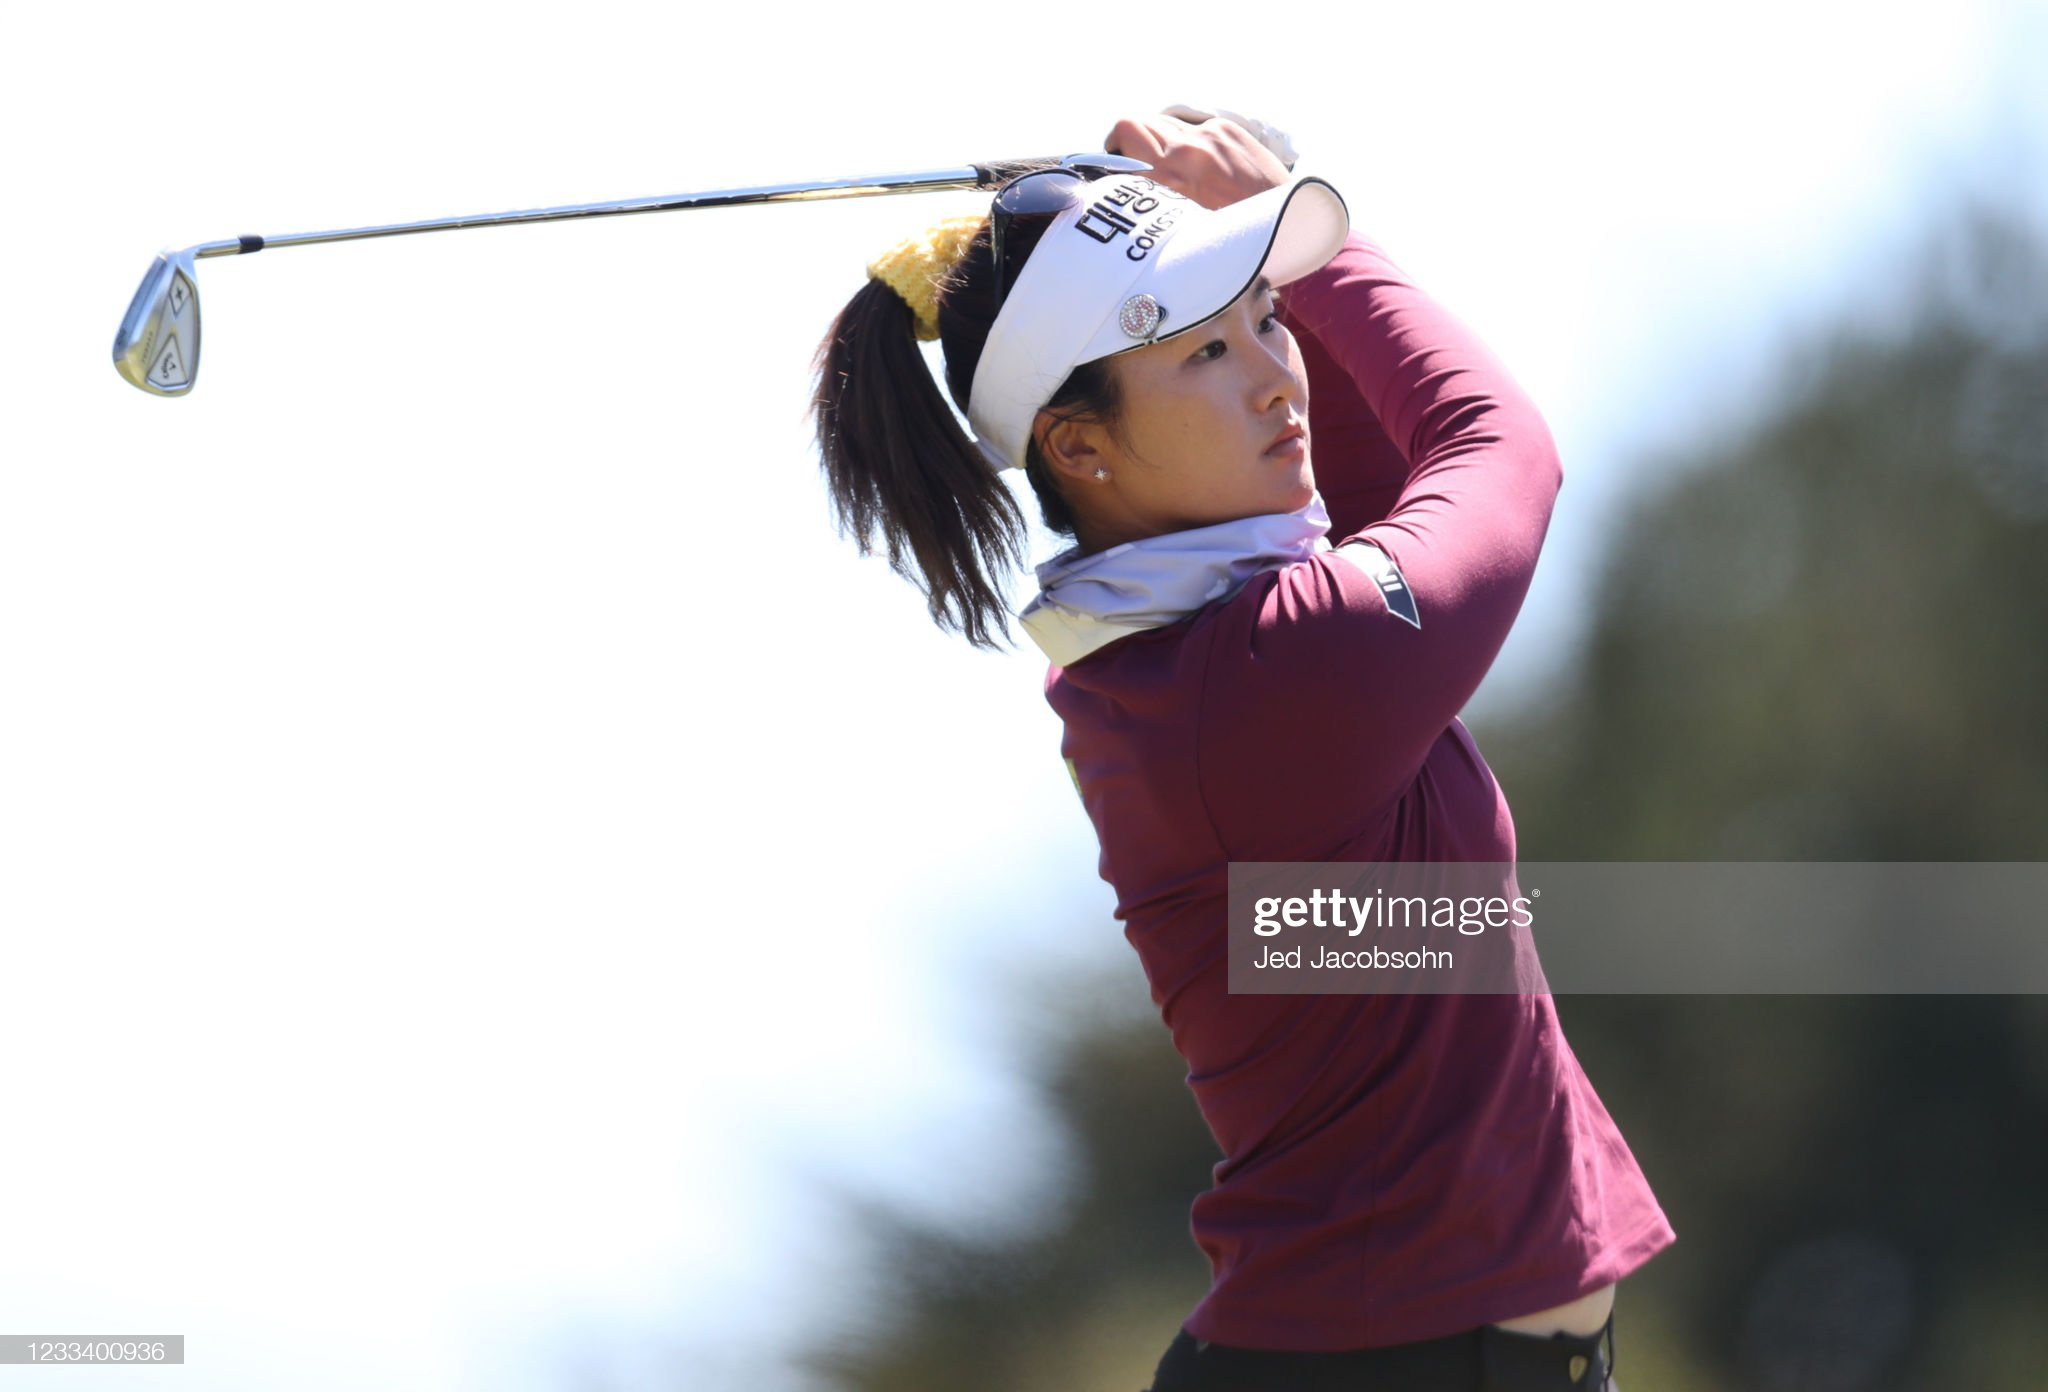 https://media.gettyimages.com/photos/lauren-kim-of-the-united-states-hits-a-shot-on-the-12th-hole-during-picture-id1233400936?s=2048x2048